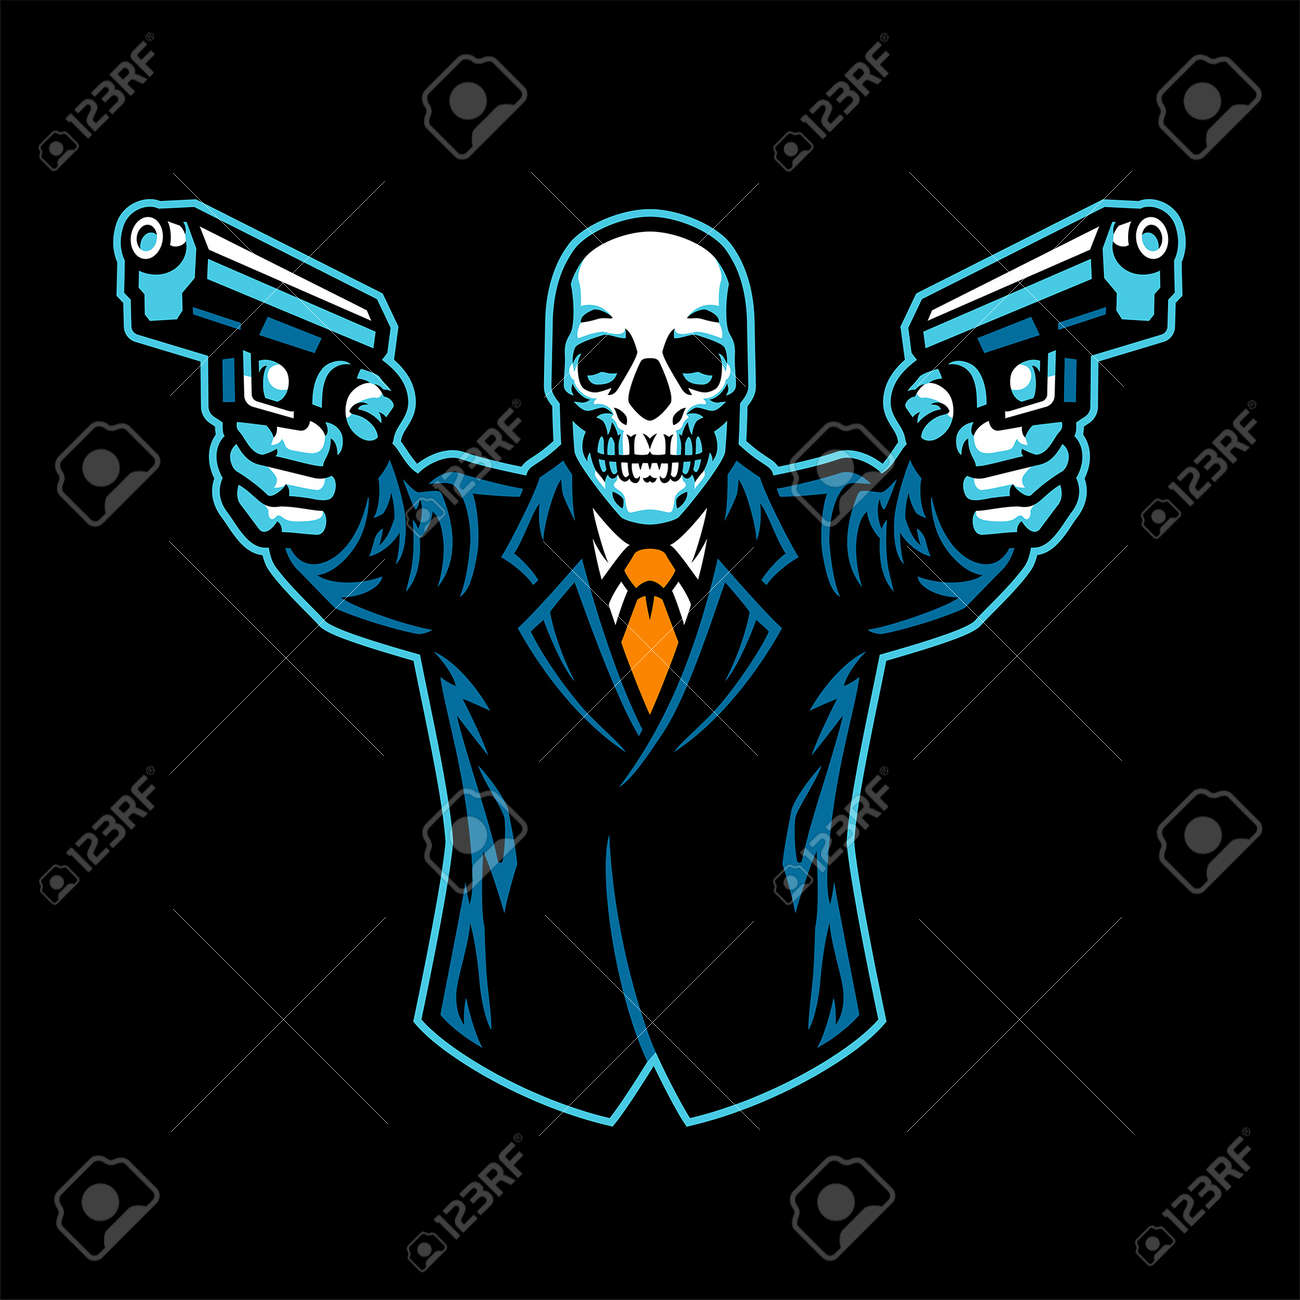 Skull wearing suit aiming the guns - 169099668